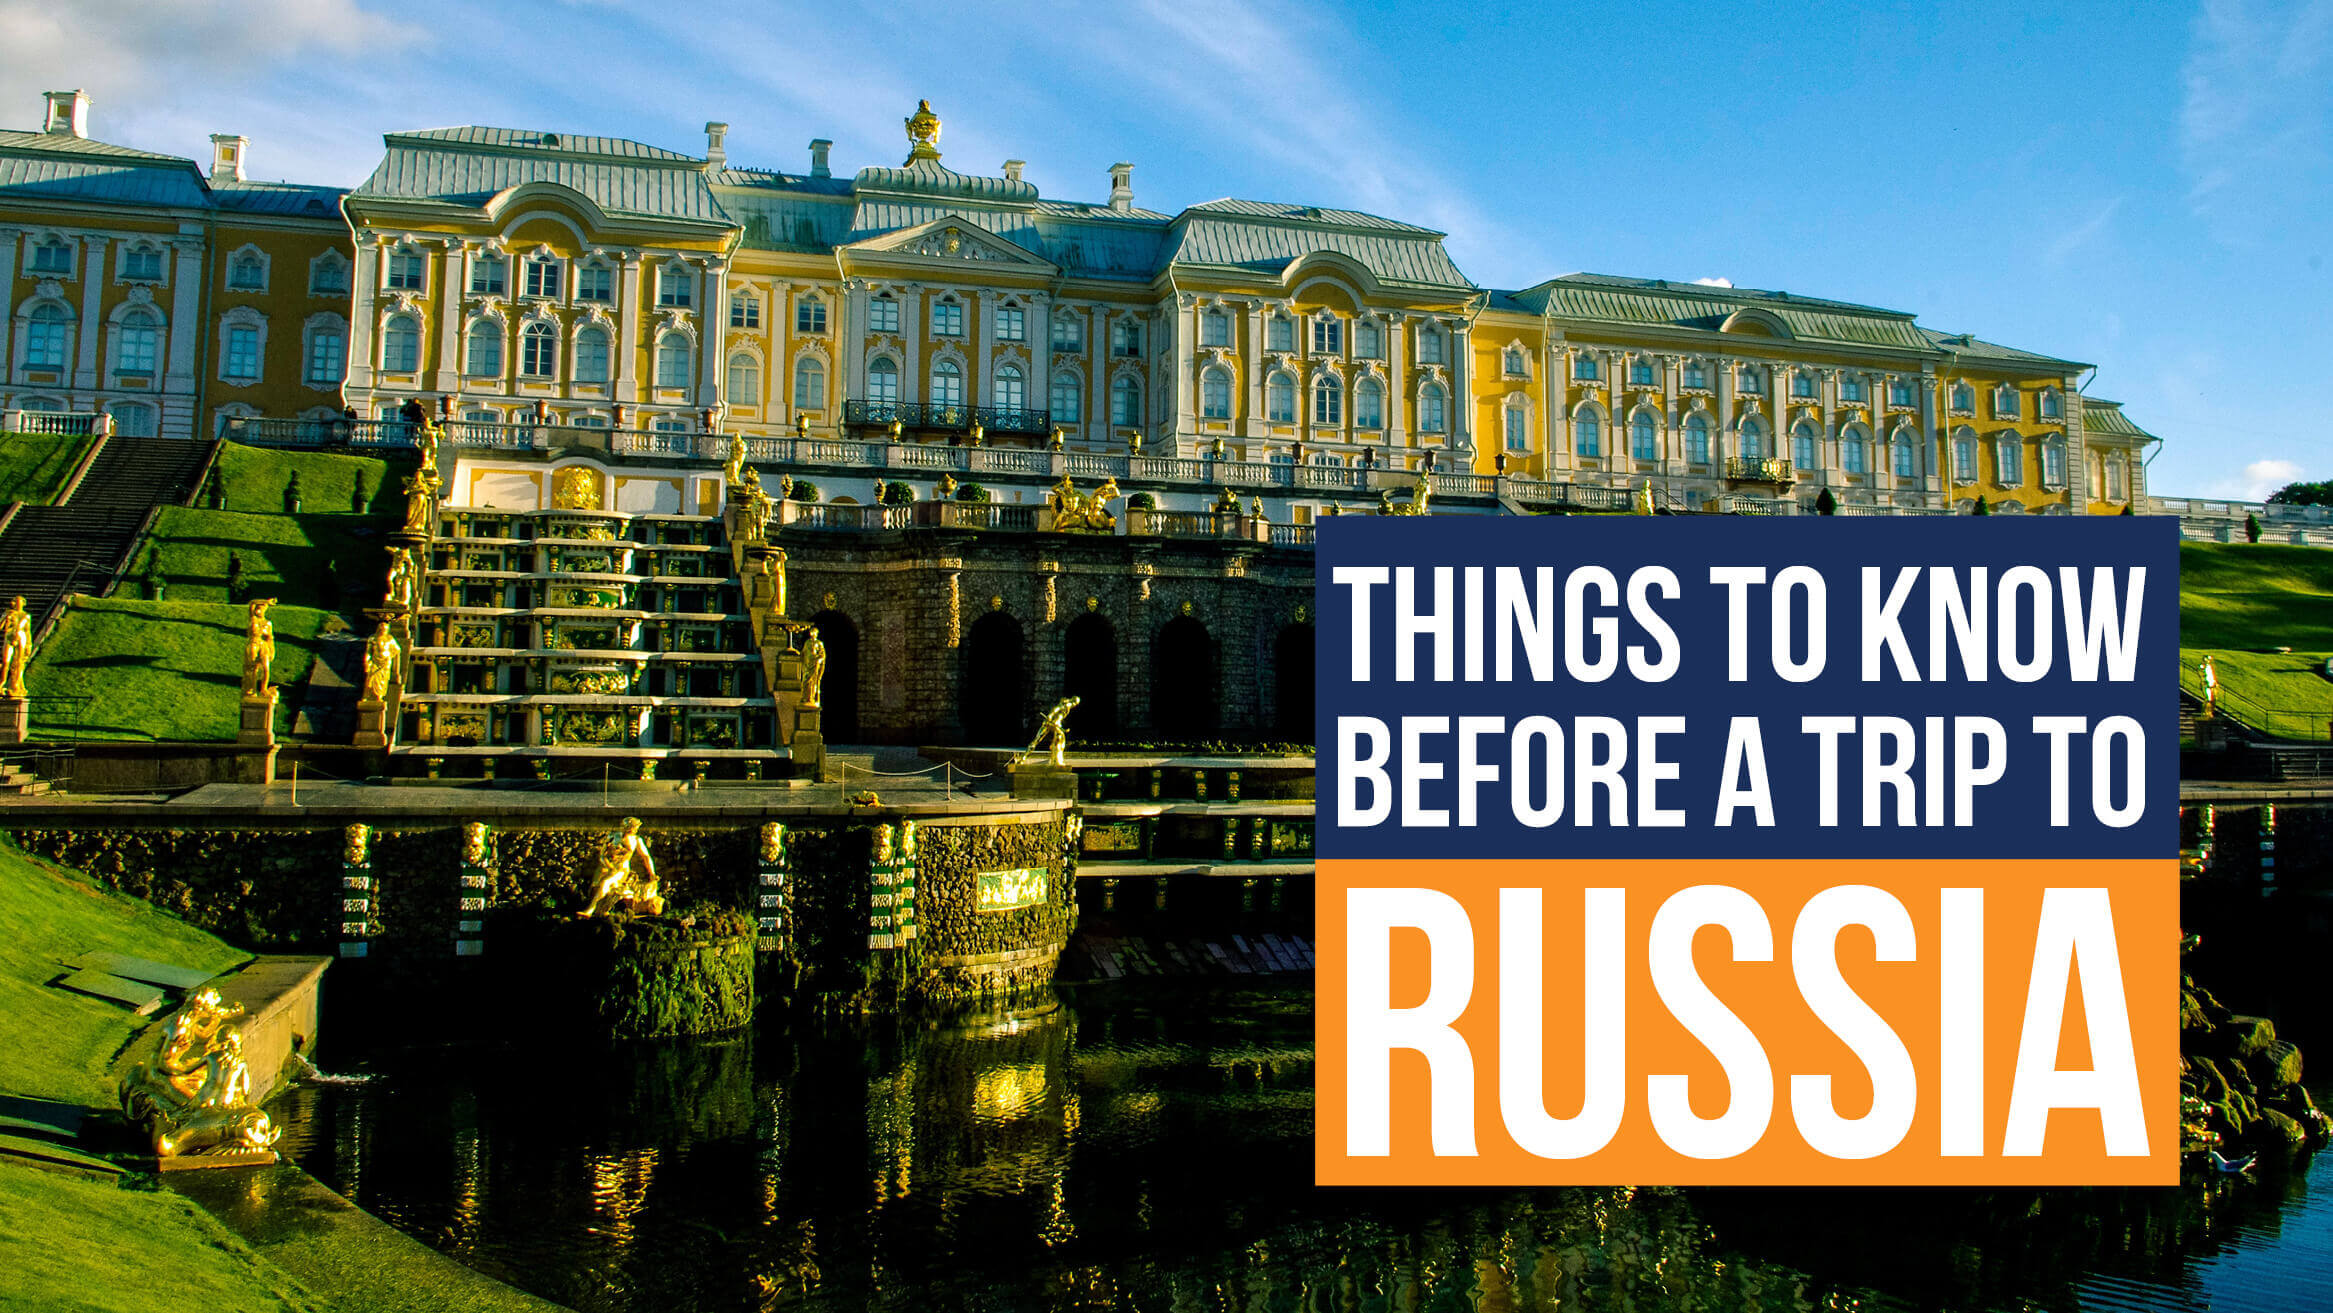 Things to know before a trip to Russia header